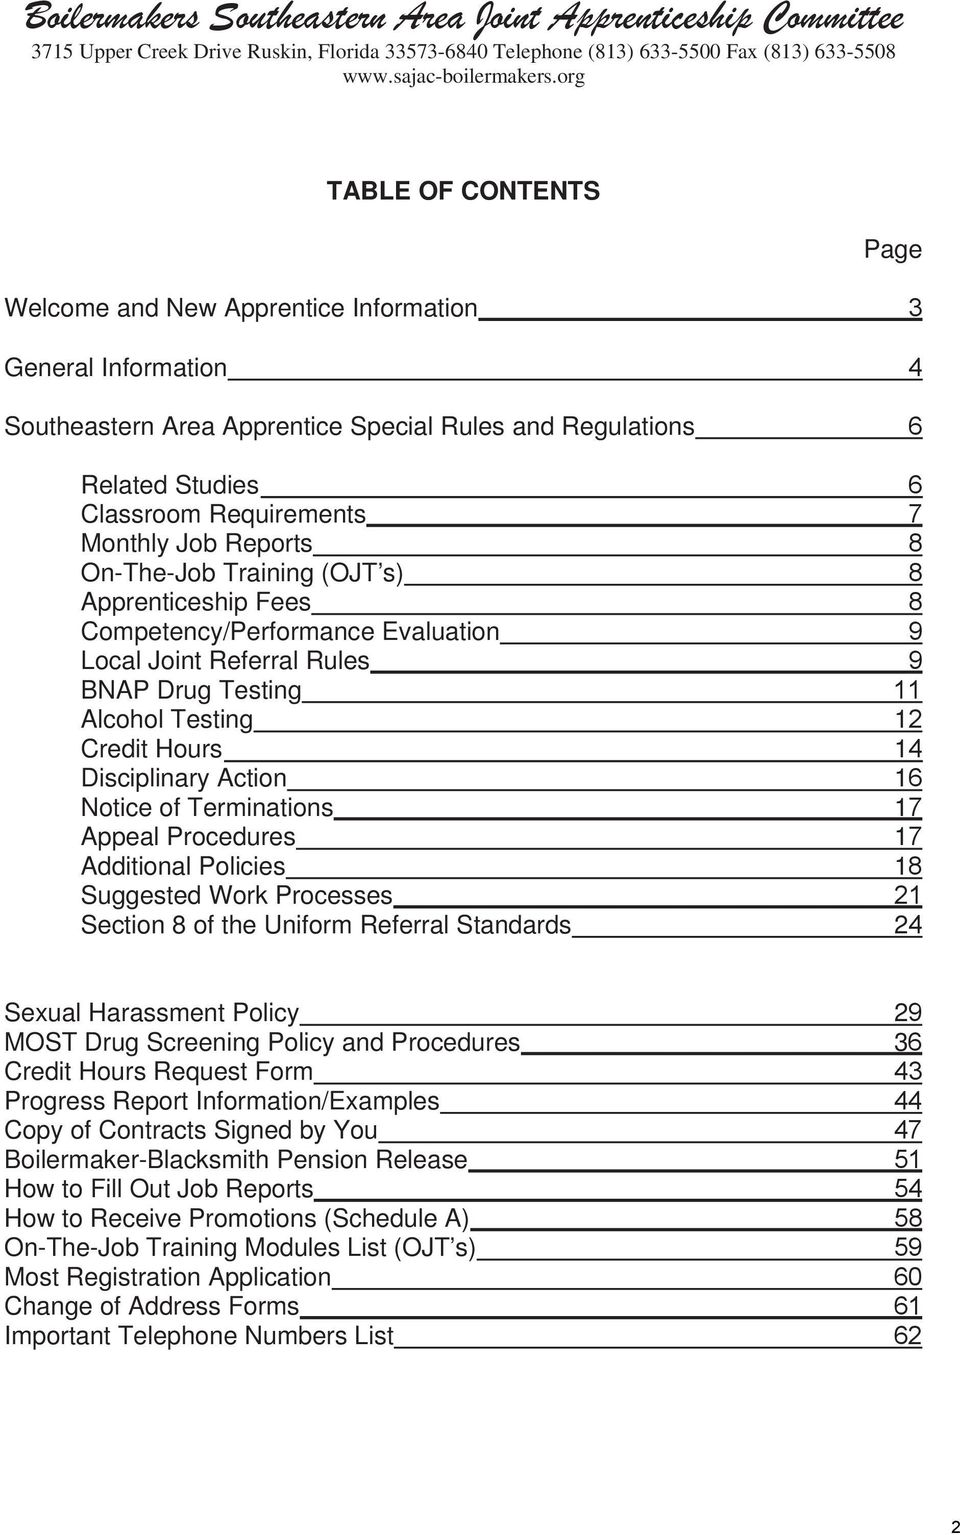 APPRENTICE INFORMATION AND RULES BOOK PDF Free Download